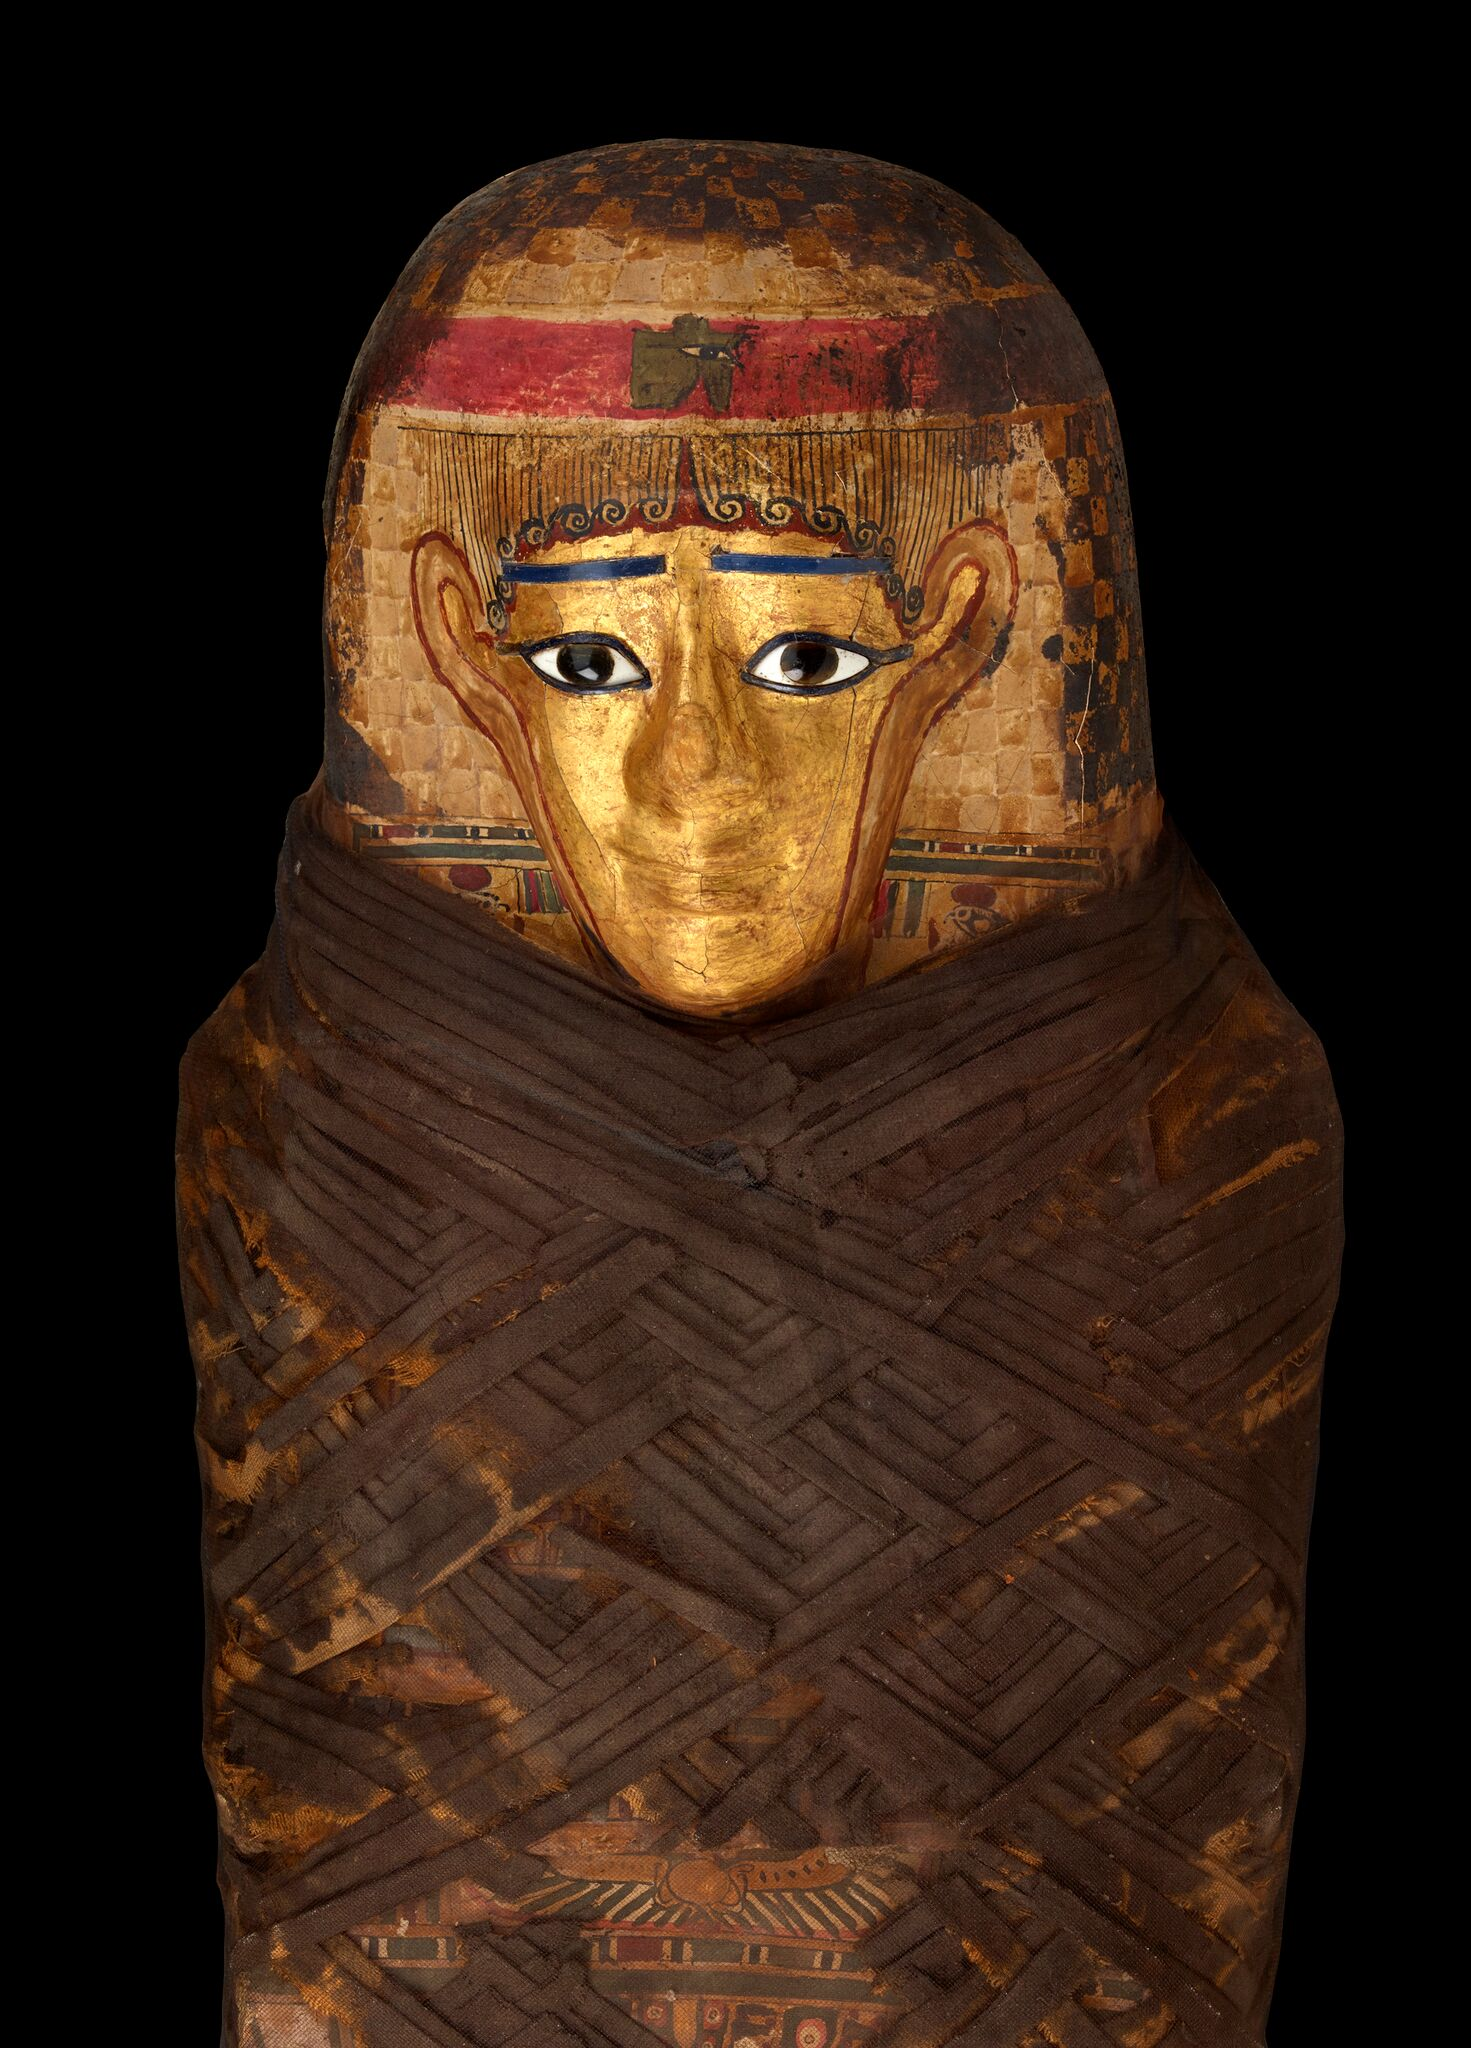 Mummies: Incredible Special Exhibition at the American Museum of Natural History